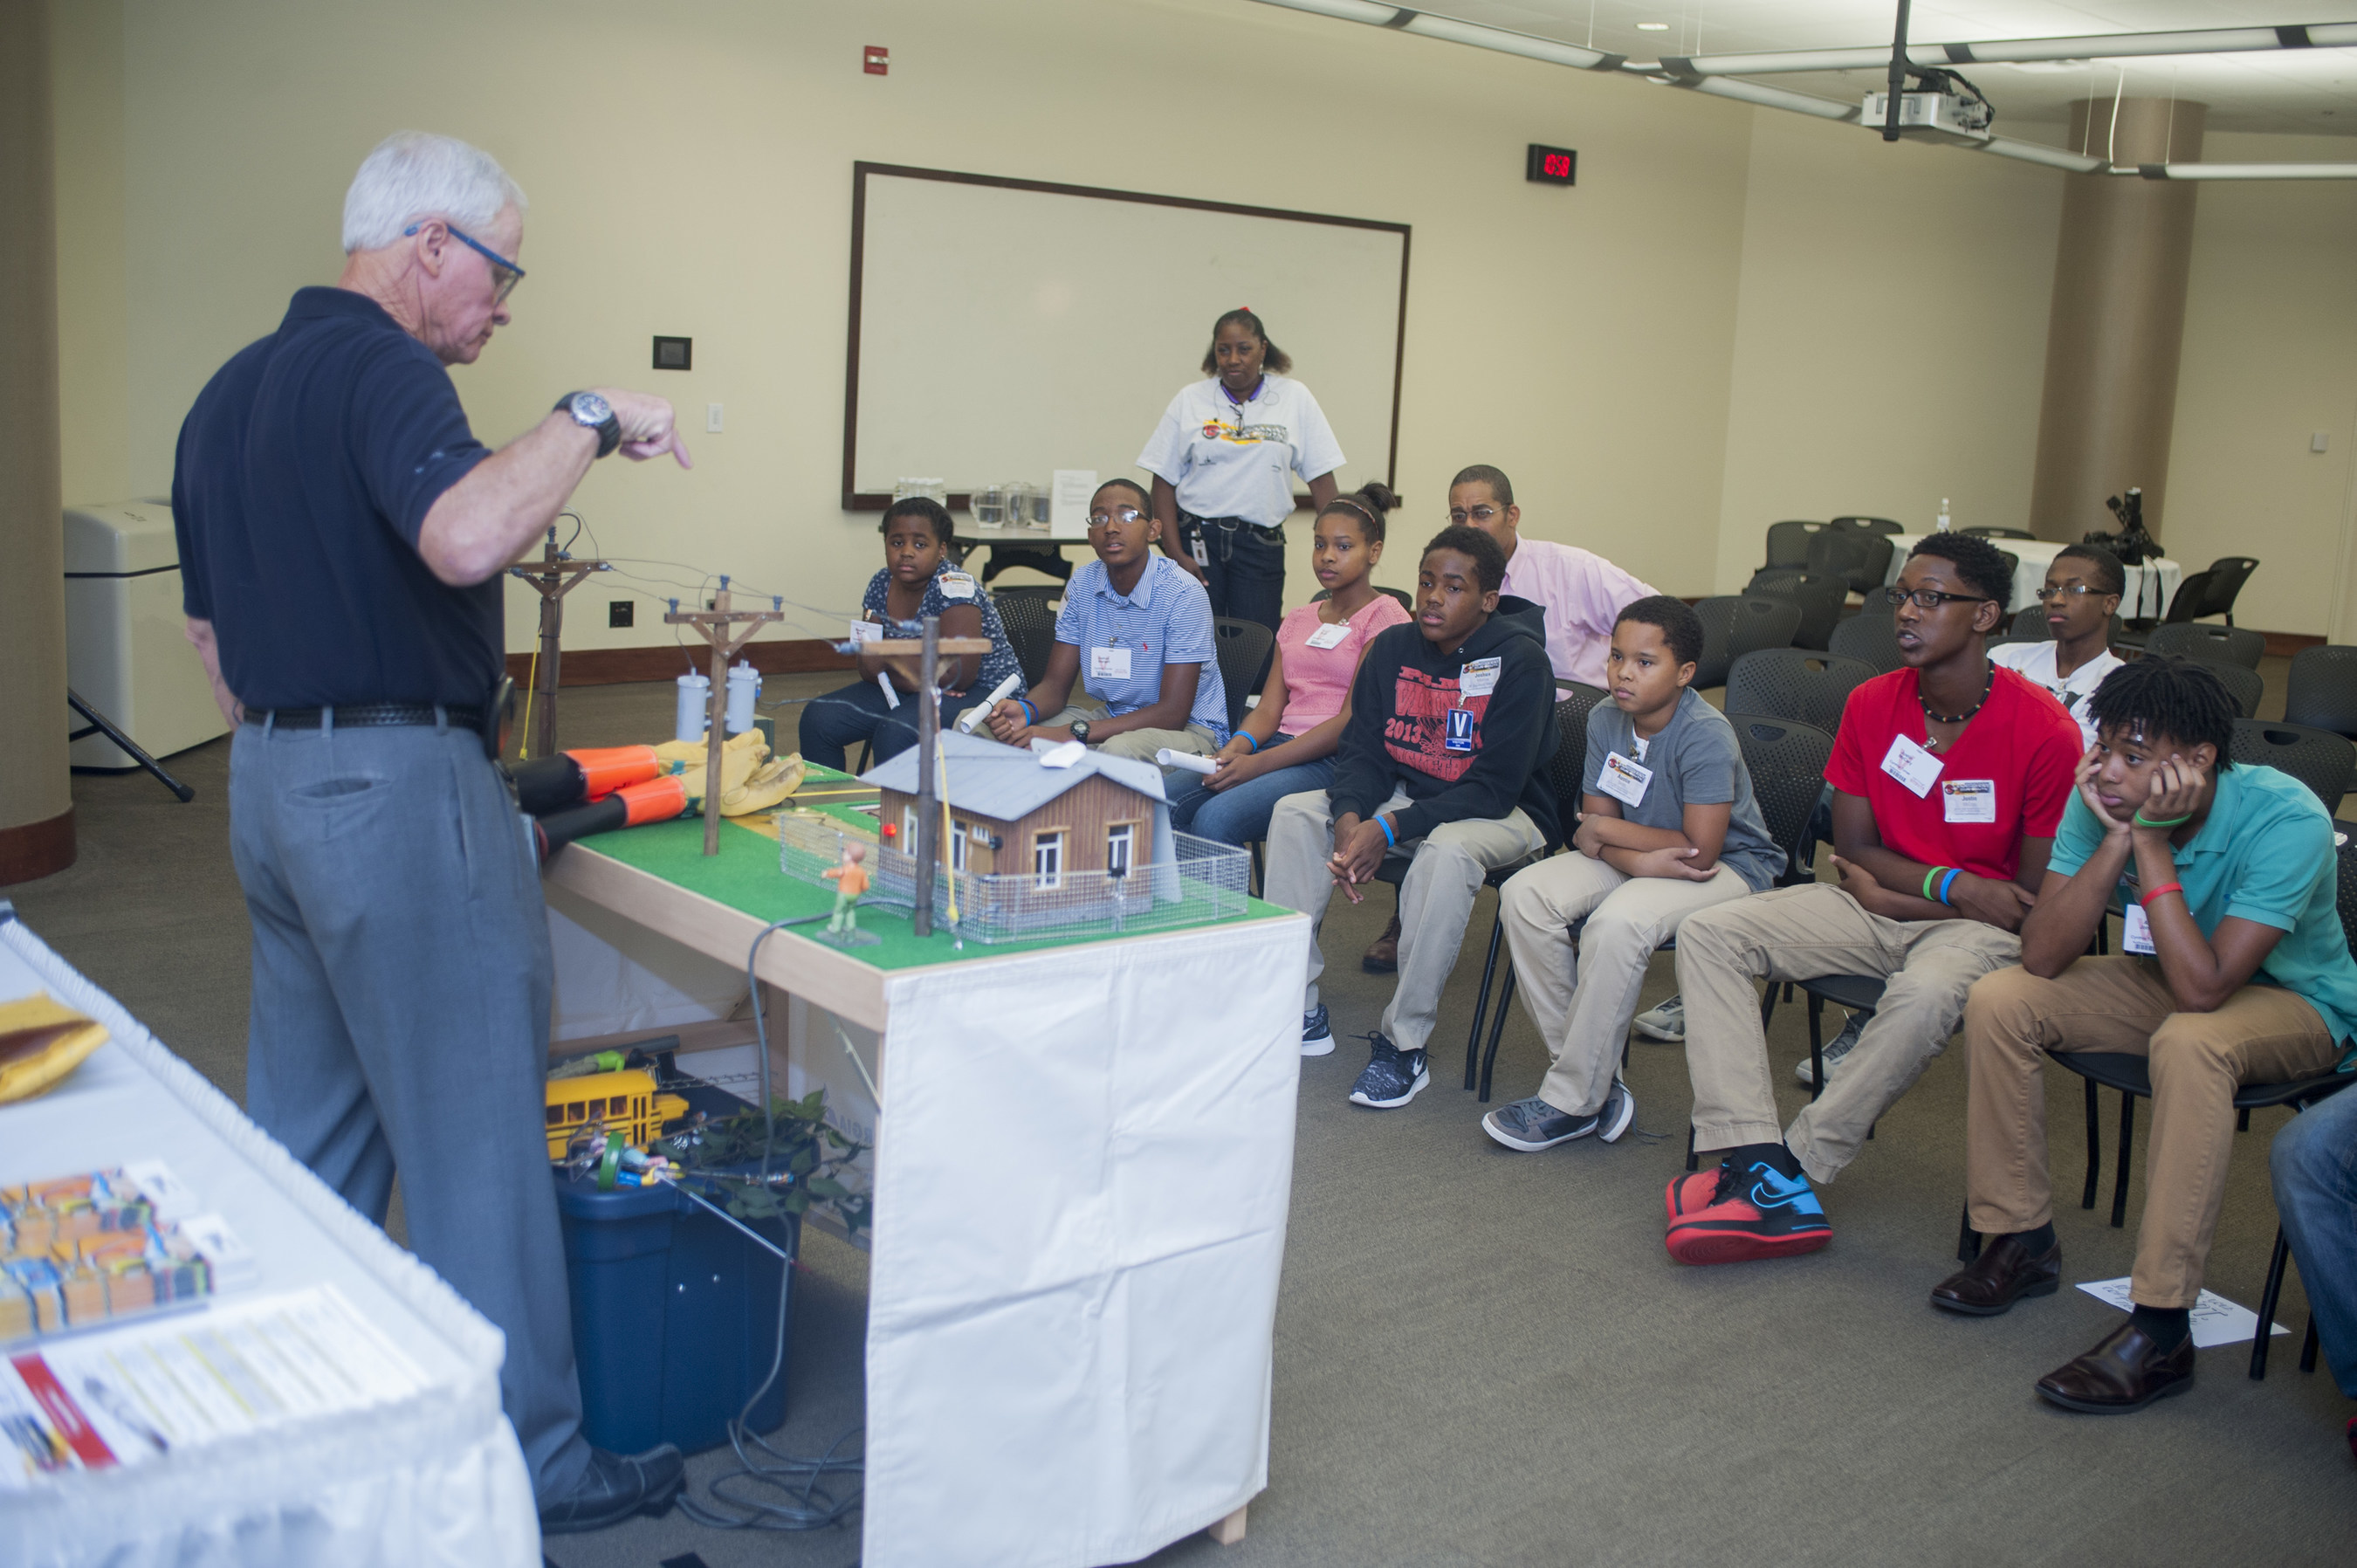 A Georgia Power PowerTOWN presenter talks to students about electrical safety using a model table town. The company has hosted more than 1,000 presentations over the past year.